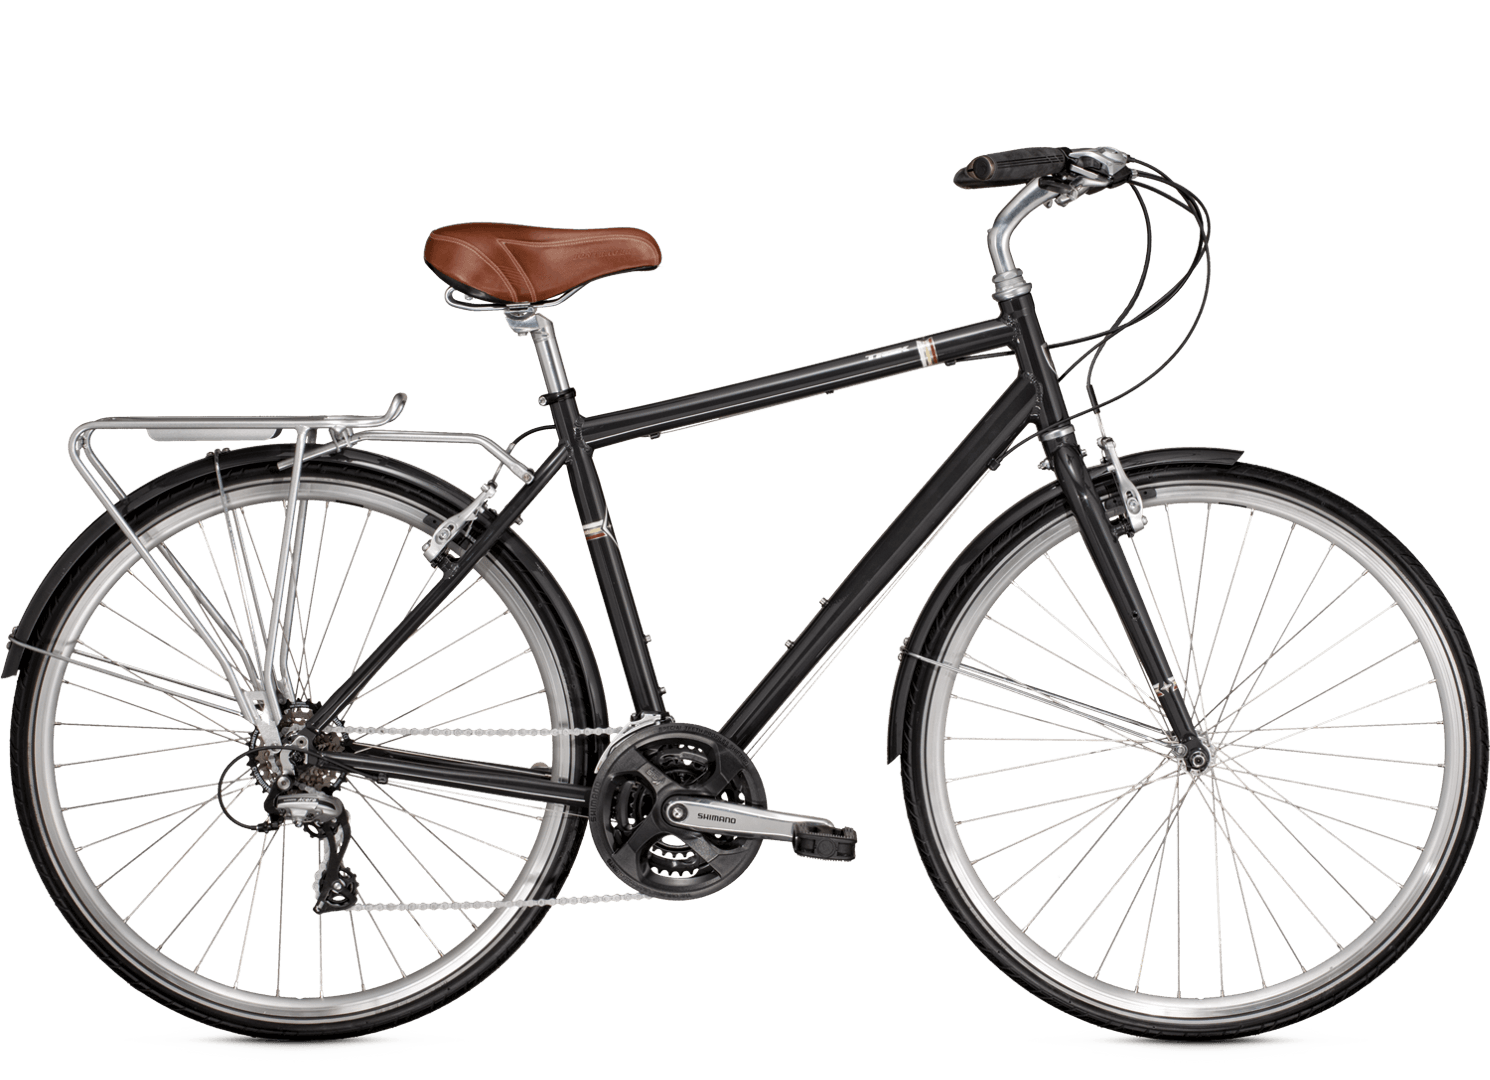 Cycle clipart vintage. Black bicycle transparent png